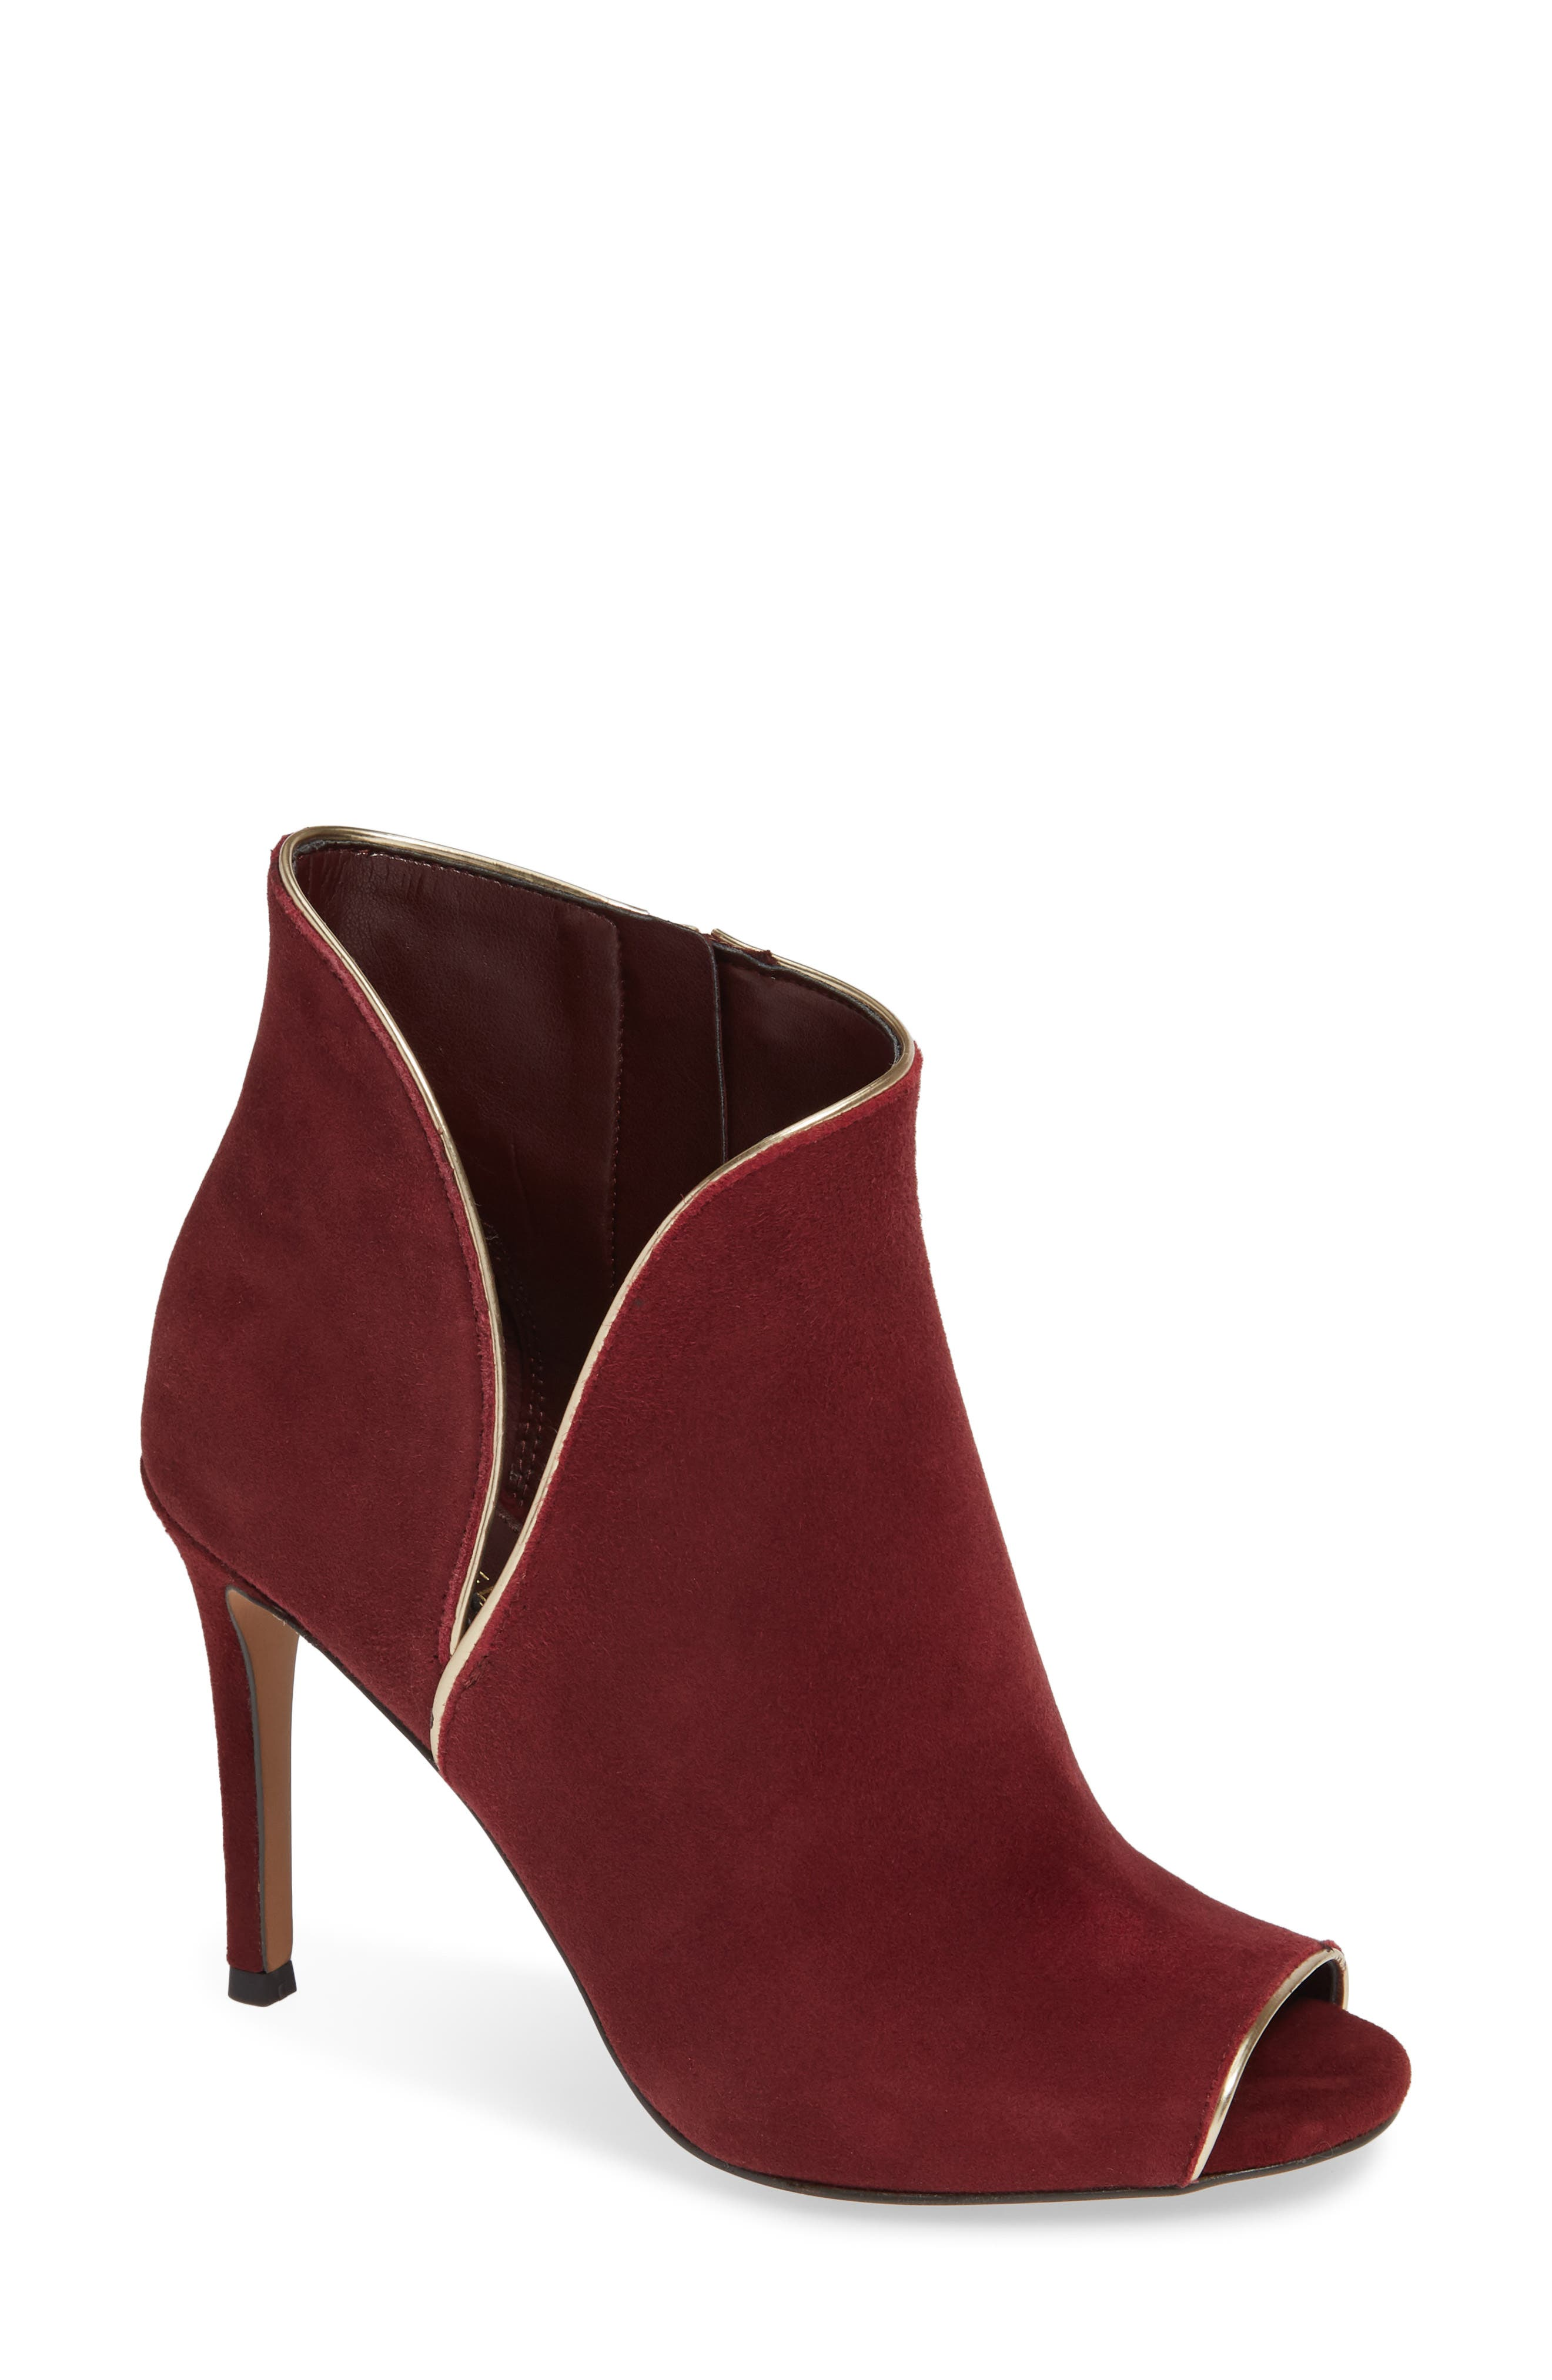 Harper Open Toe Bootie in Oxblood Suede